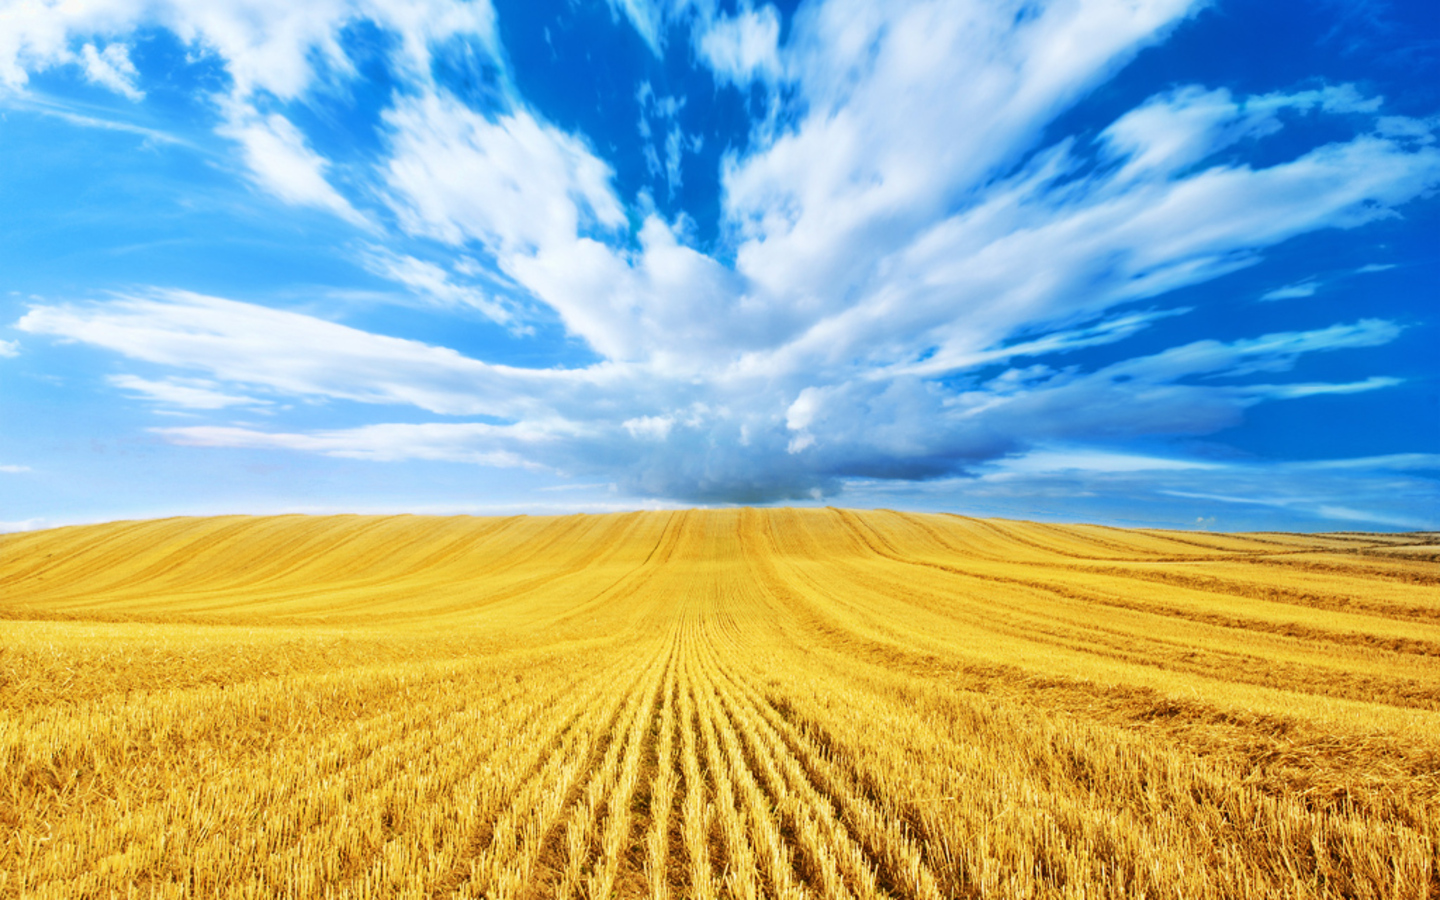 golden-harvest-blue-clouds-gold-wheat-field-hd-wallpaper-download-wheat-field-images